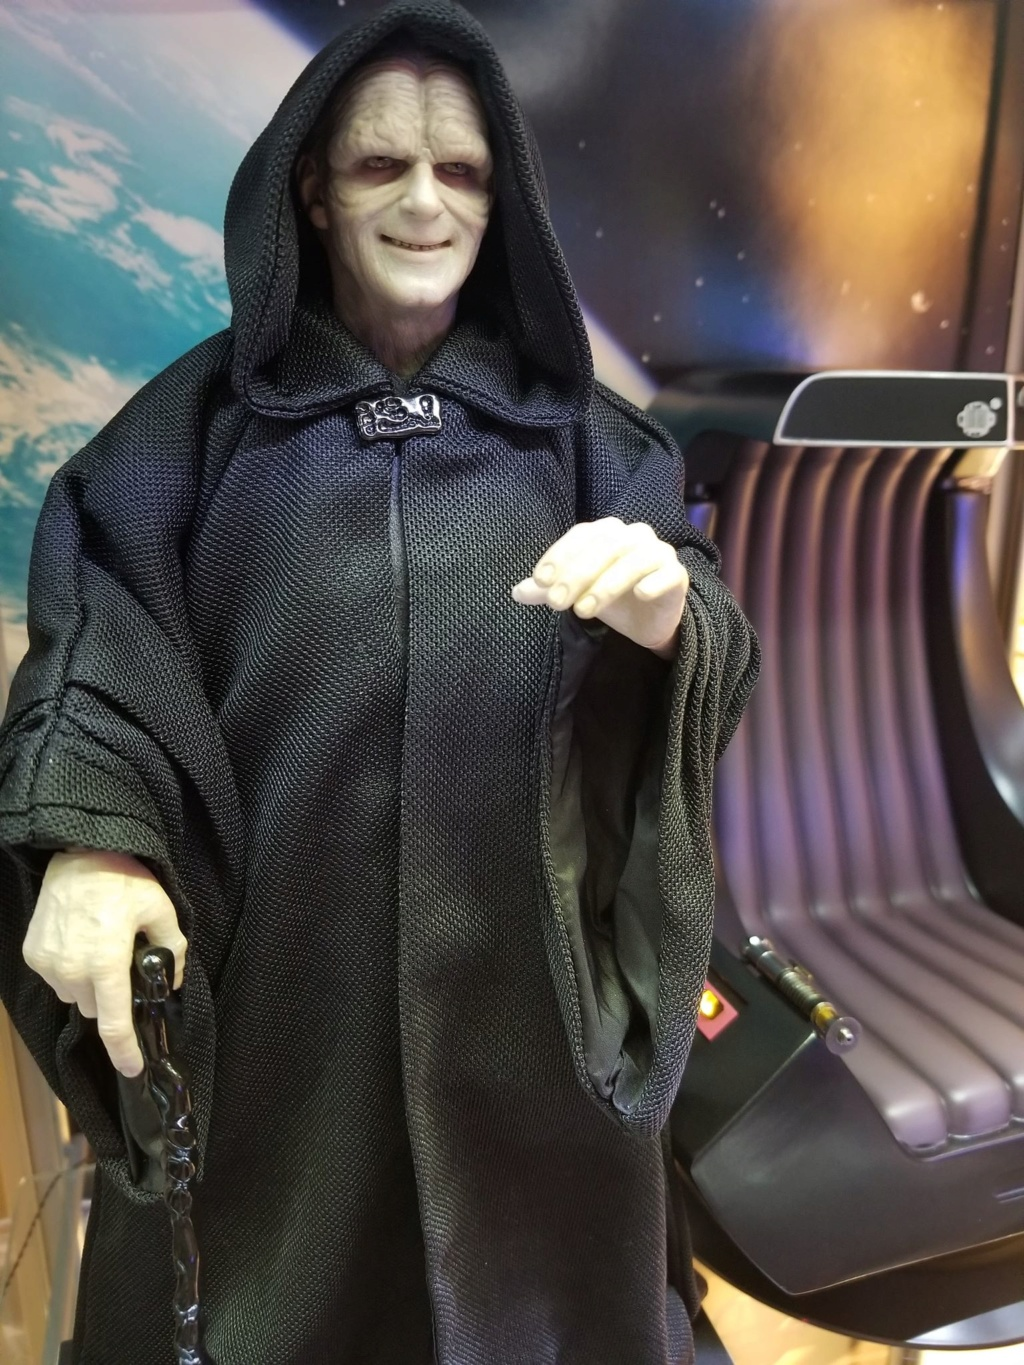 rotj - Hot Toys Star Wars Emperor Palpatine (Deluxe) Review - Page 2 48395410